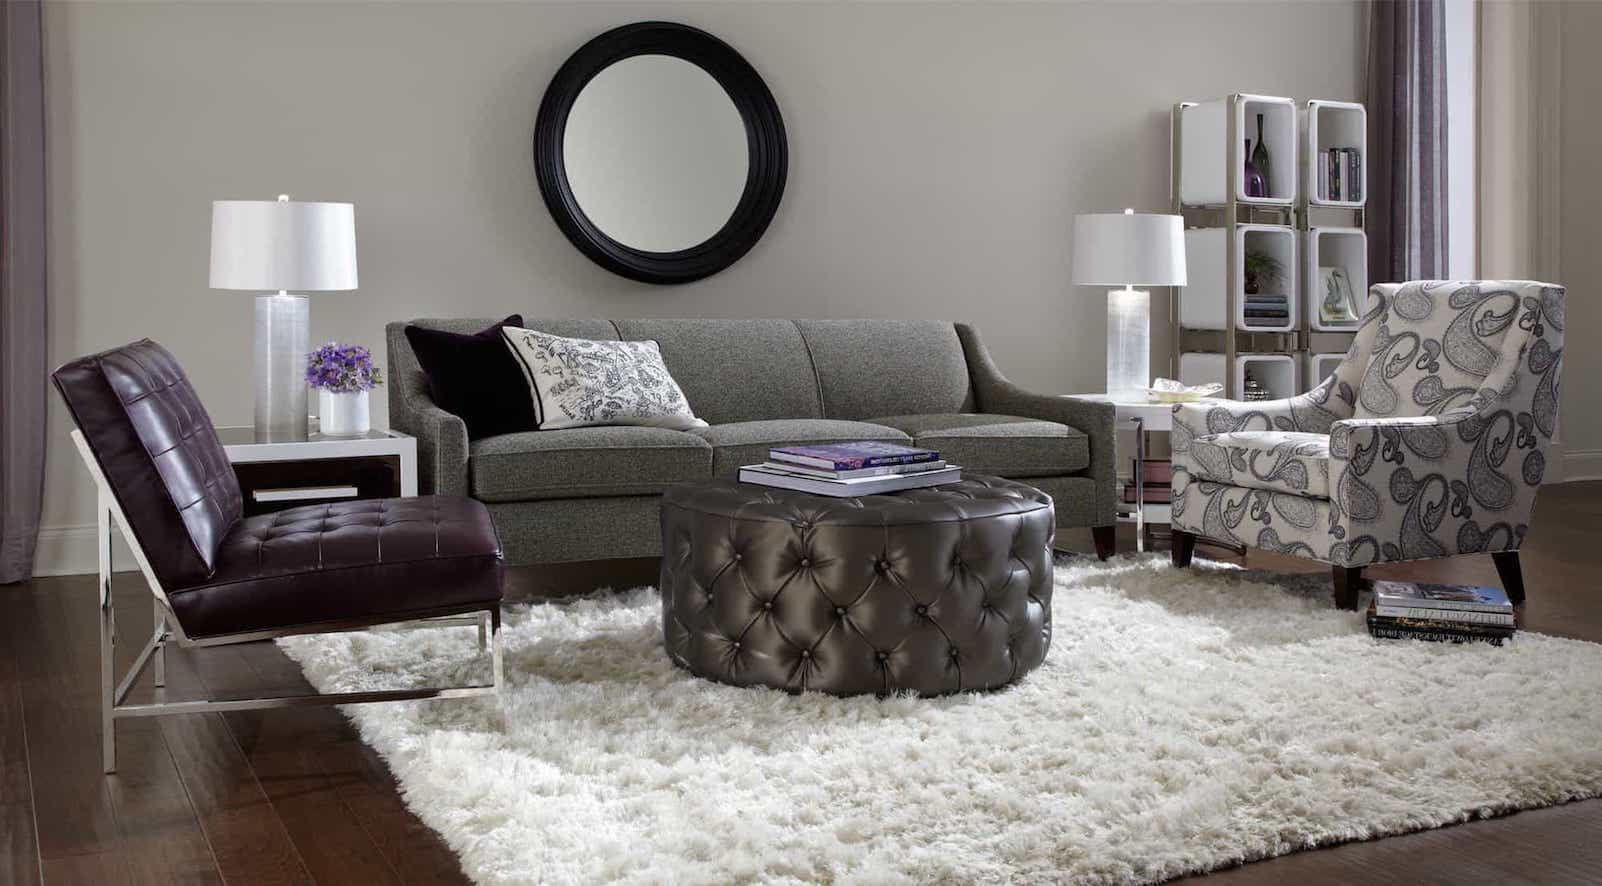 Modern Natural Furry White Shag Rugs For Living Room Decor (View 11 of 15)